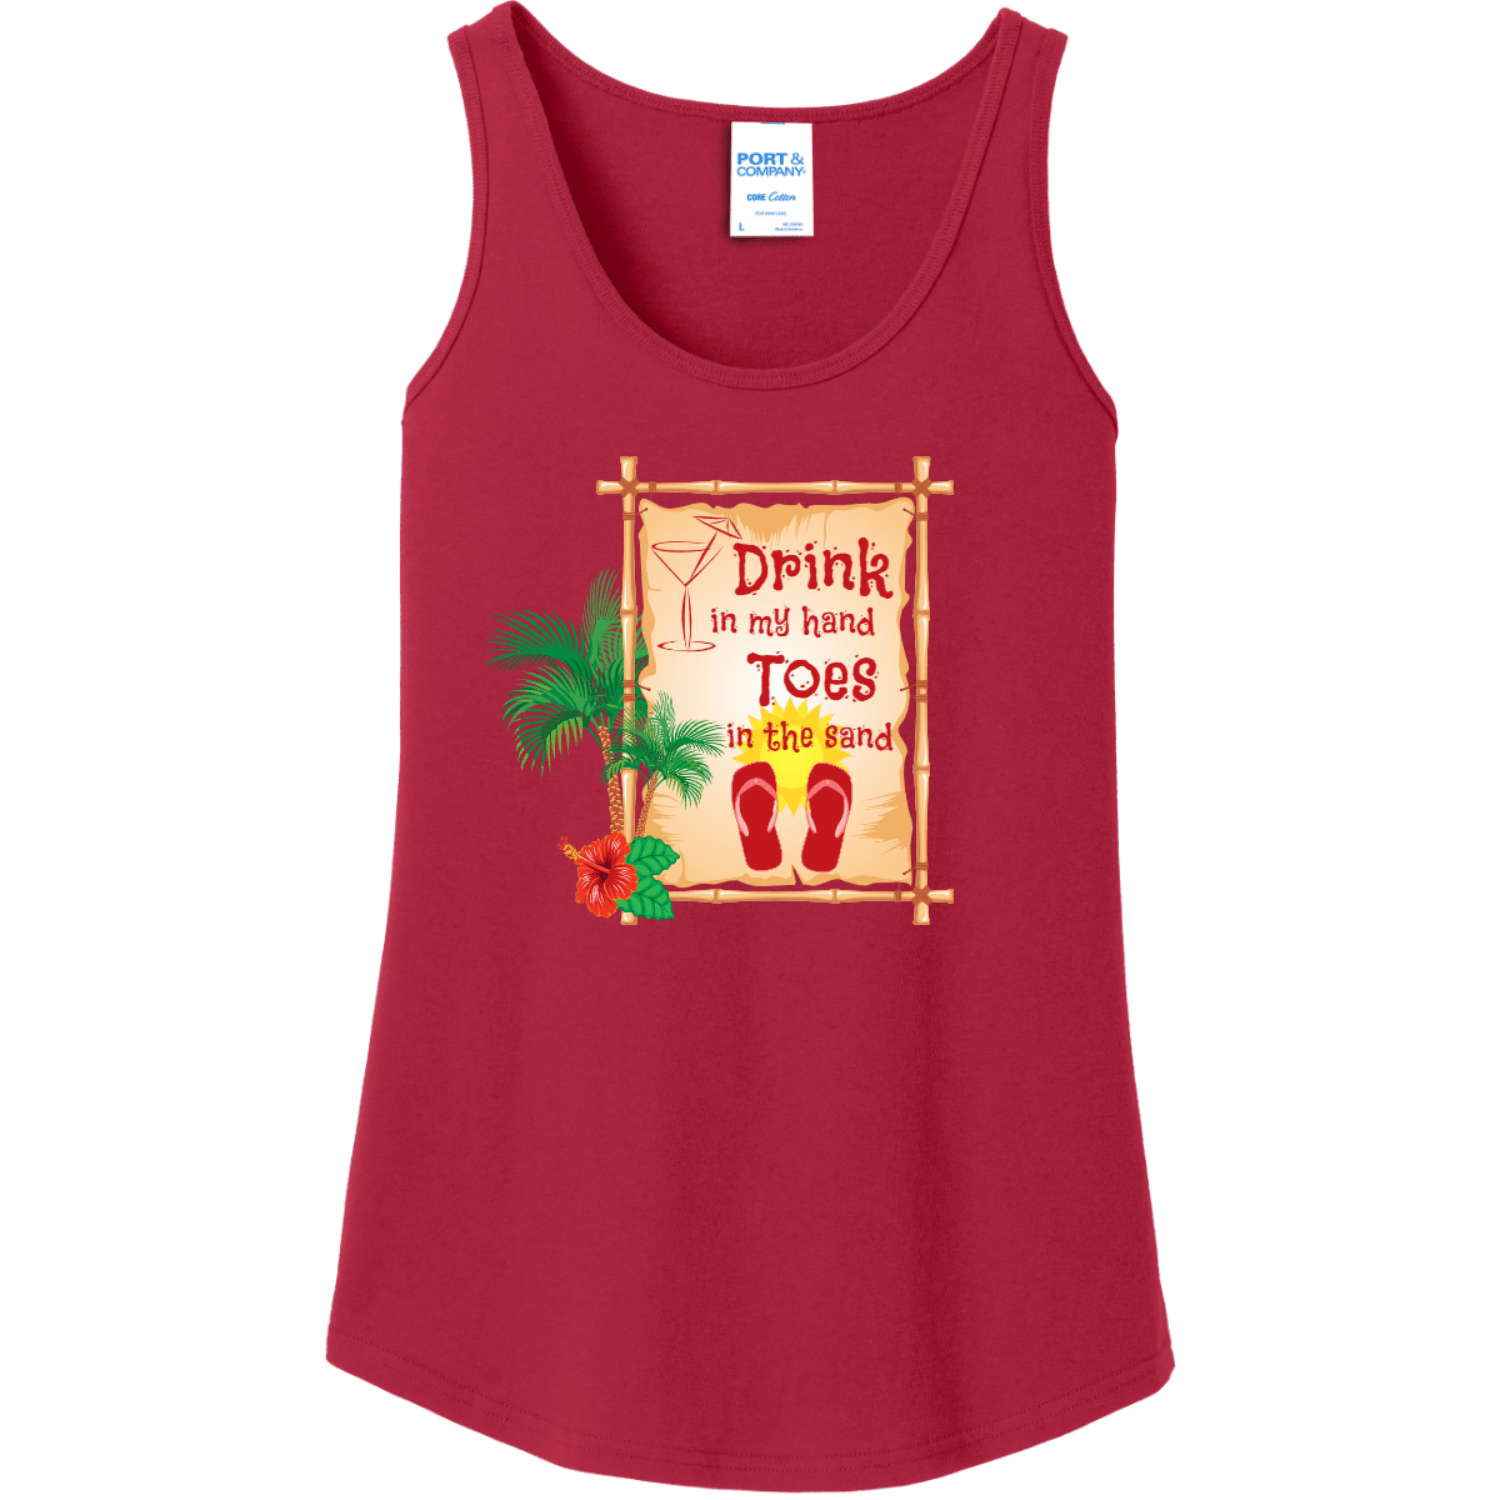 Drink In My Hand Toes In The Sand Tank Top Red Port And Company Ladies Tank Top LPC54TT